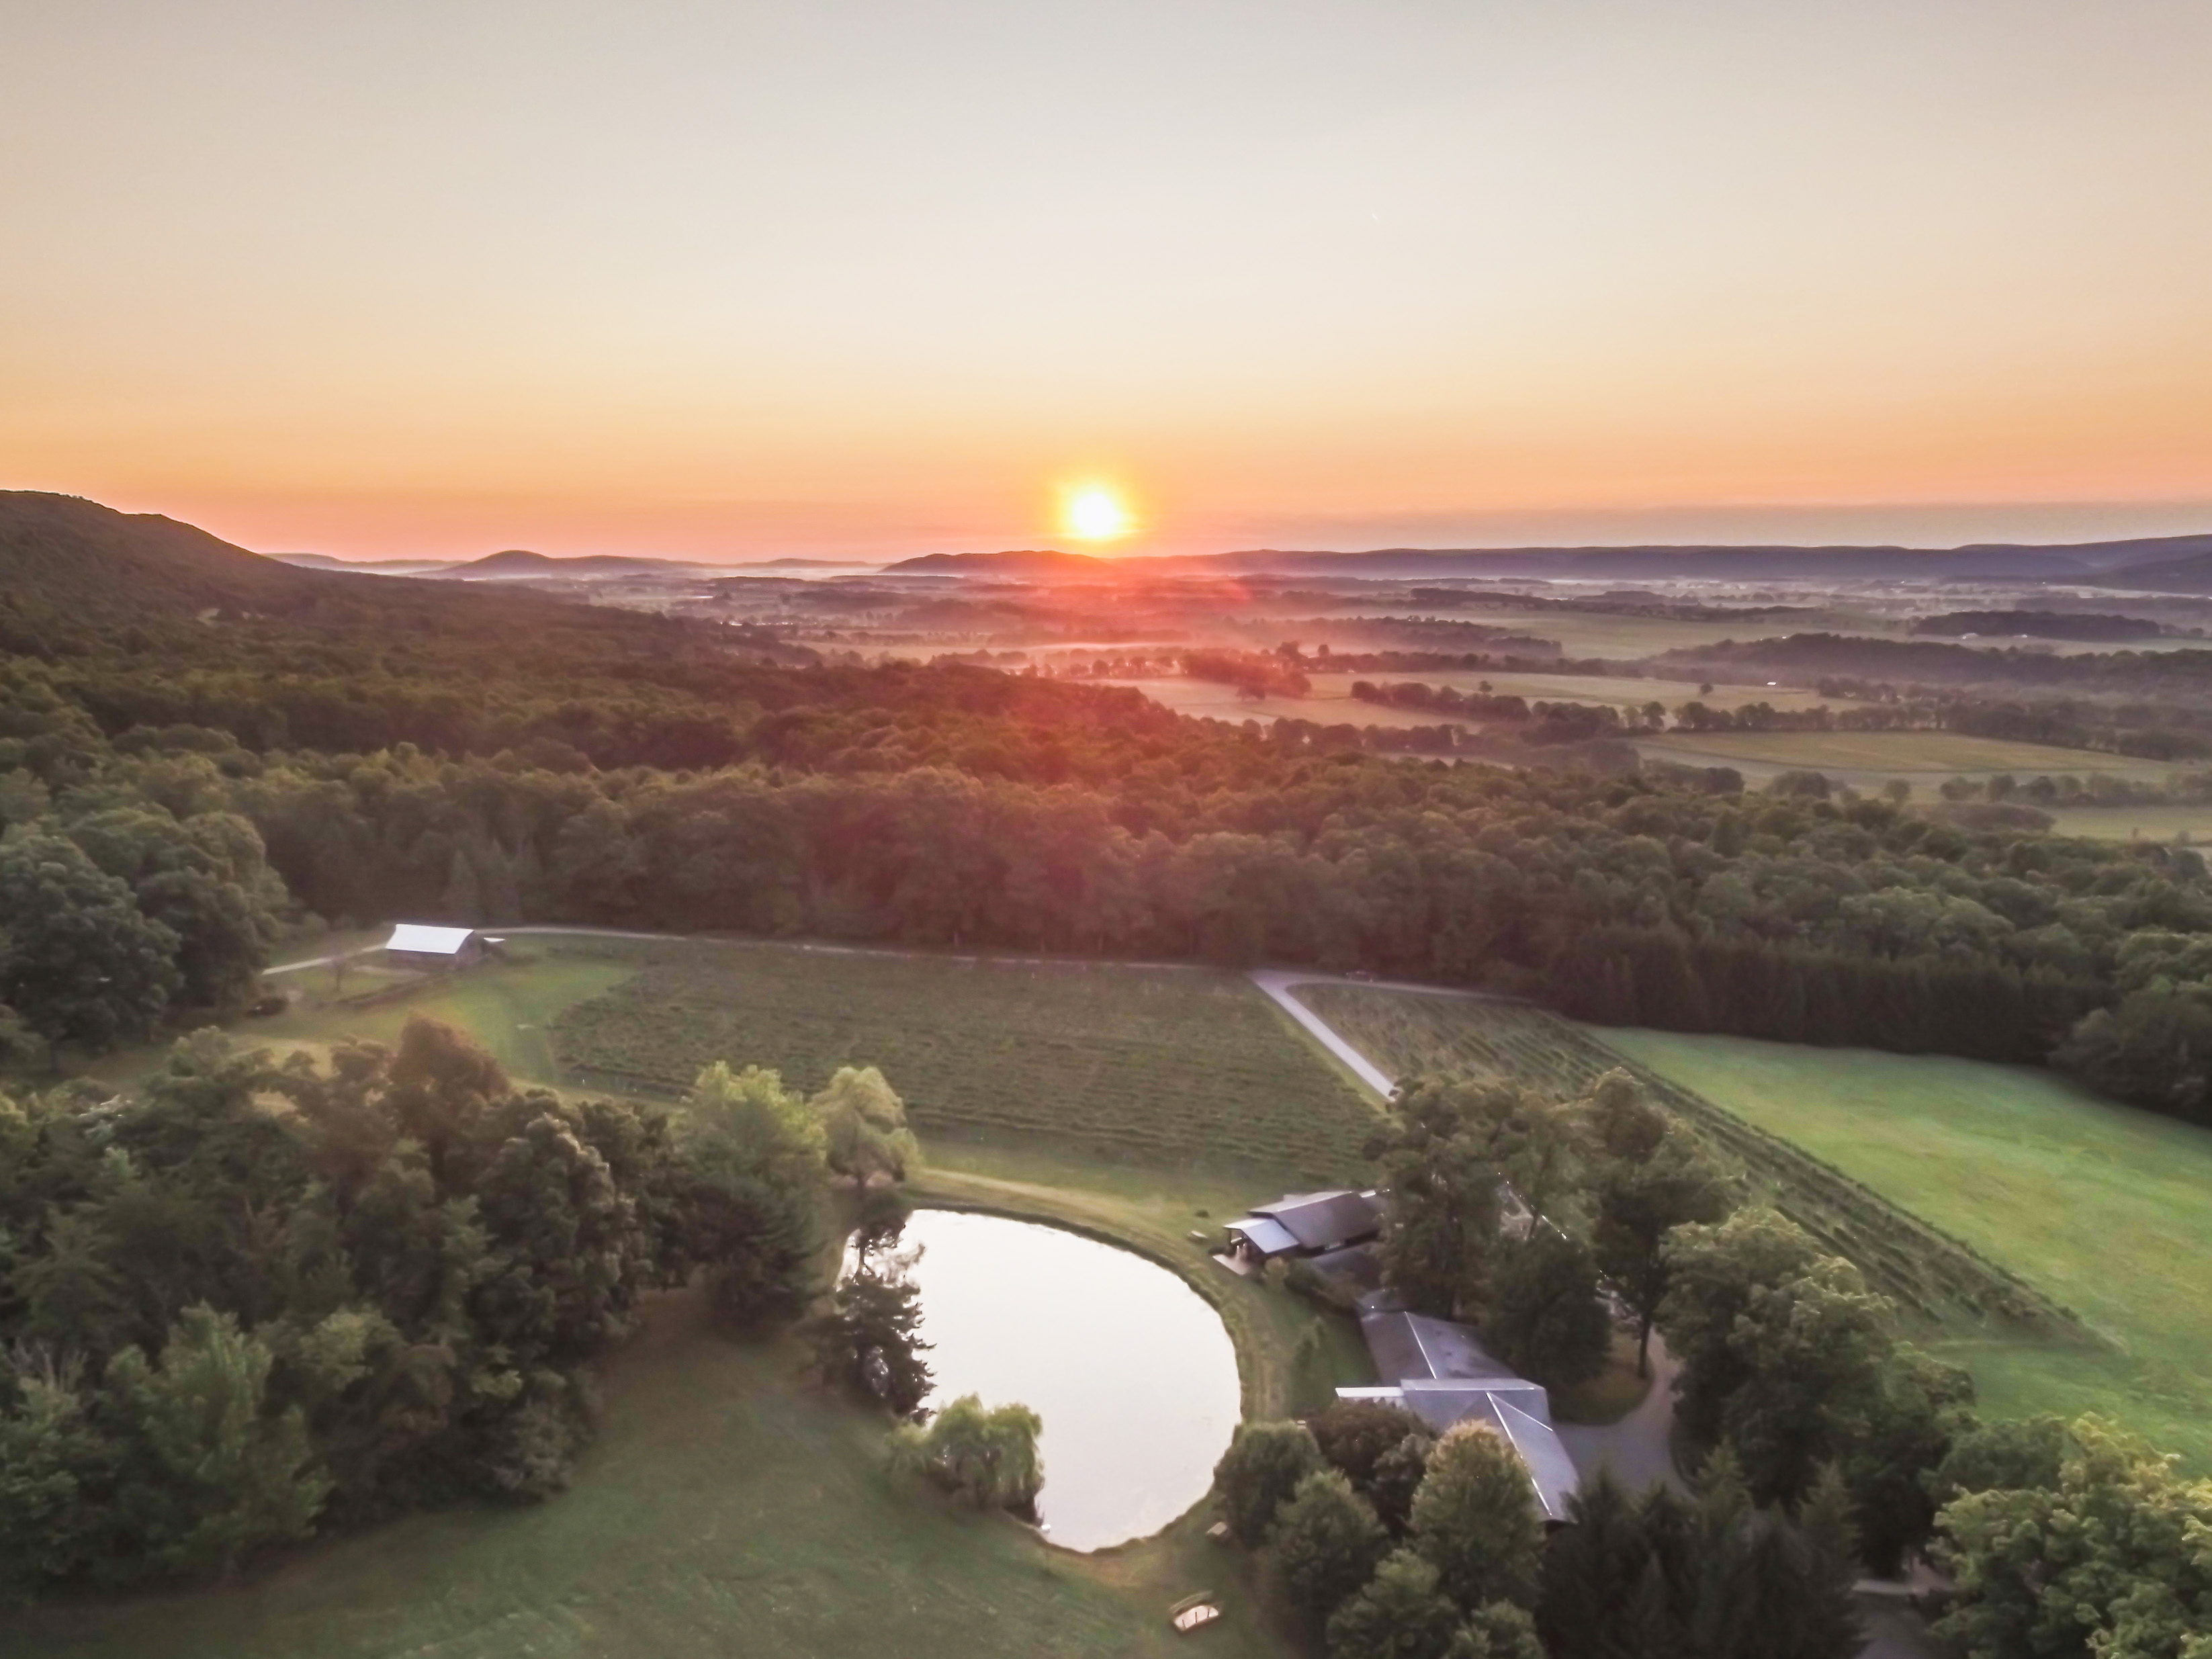 Mt Nittany Winery Aerial Sunrise